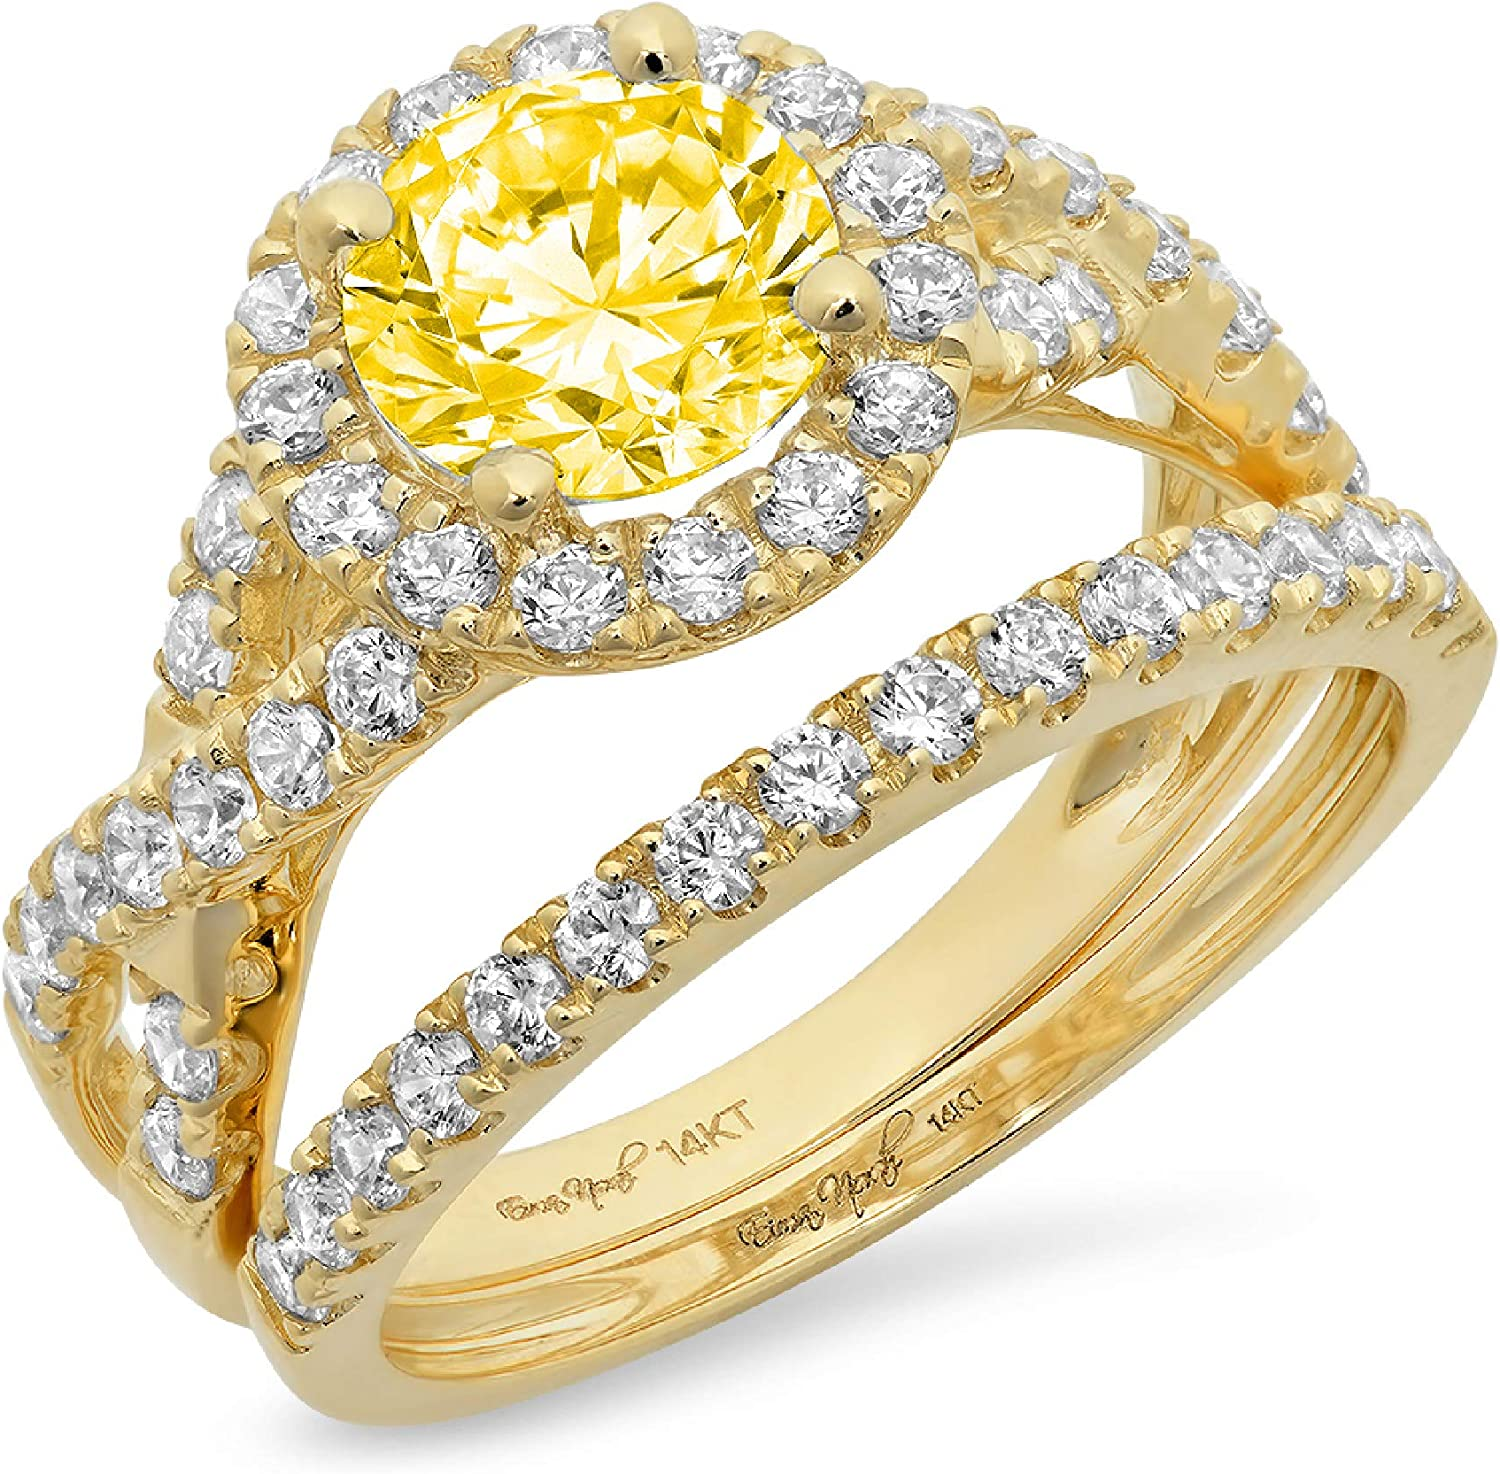 2.40ct Round Cut Halo Split Shank Solitaire Accent Canary Yellow Simulated Diamond CZ Engagement Promise Statement Anniversary Bridal Wedding Ring Band set Real Solid 14k Yellow Gold